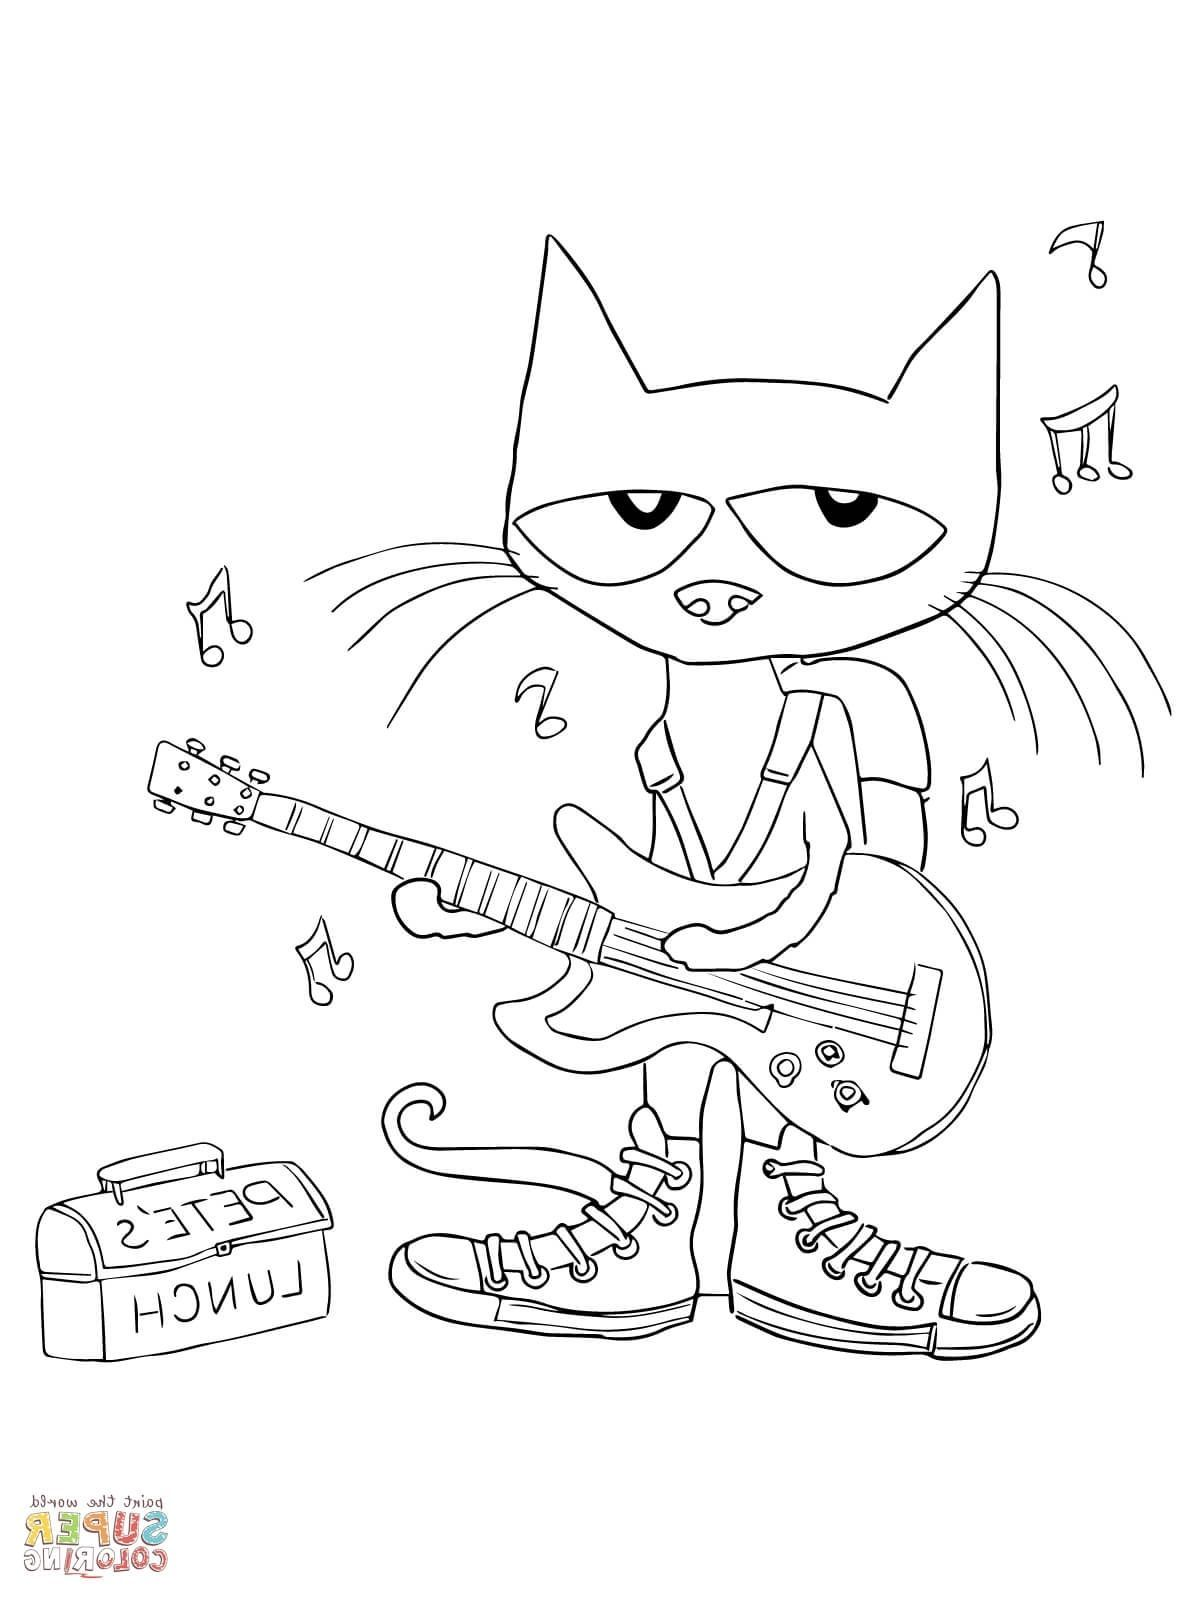 22+ Pete the cat thanksgiving coloring page info